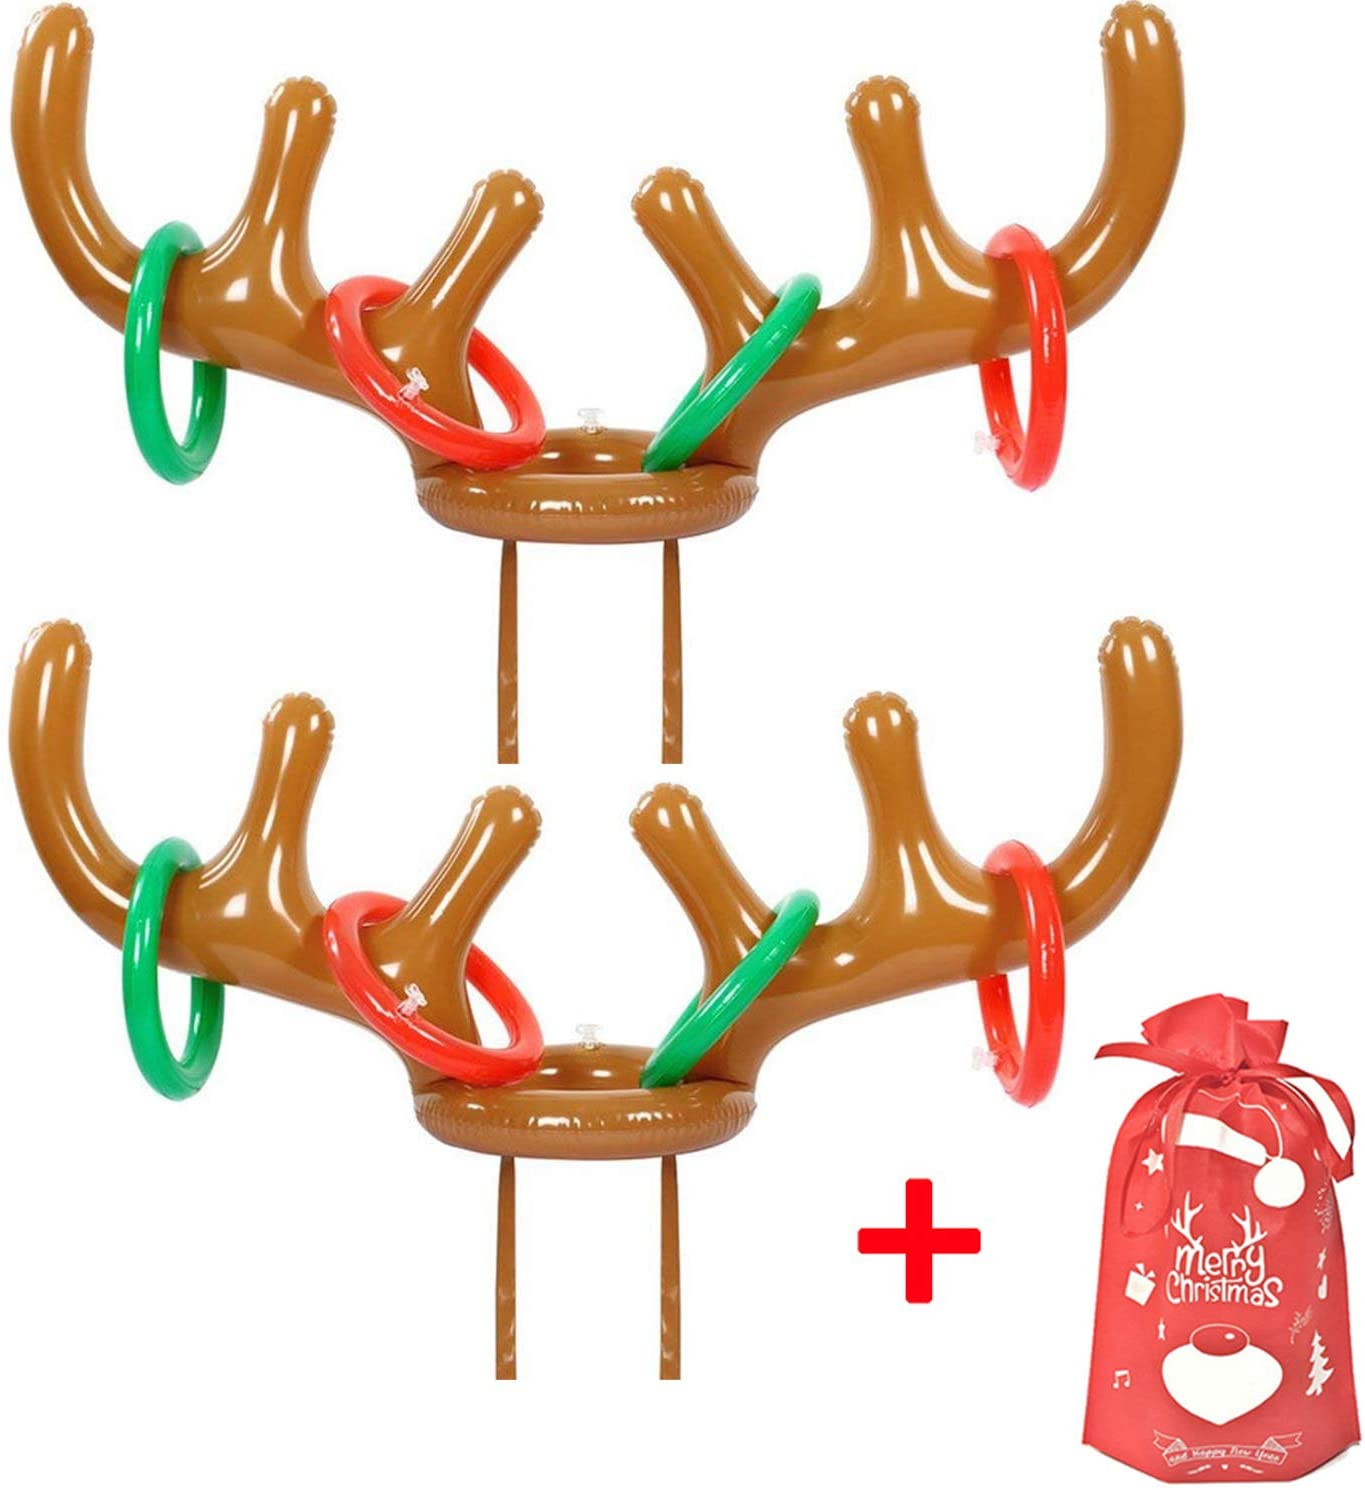 MODOLO 2 to 4 Players Inflatable Reindeer Antler Ring Toss Game for Christmas Holiday Party Game (2 Antlers, 8 Rings &1 Gift Bag)